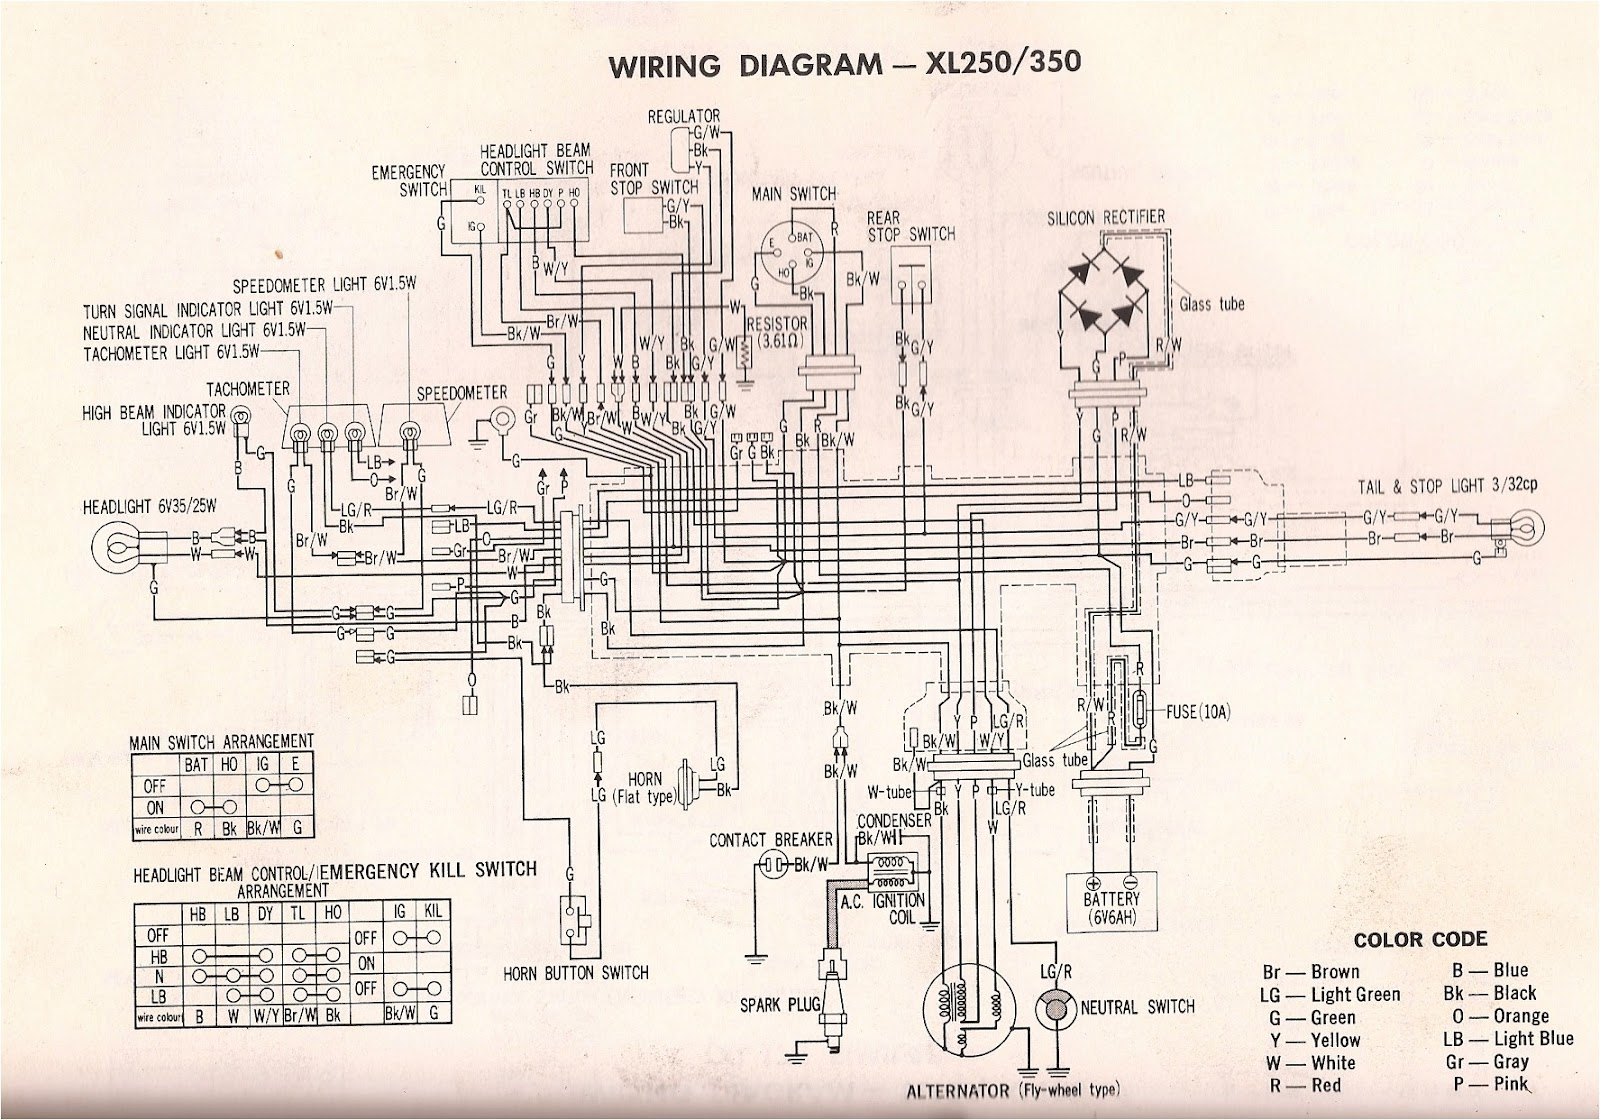 XL350+Wiring+diagram+S r4l xl350 wiring diagram (and xl250) 1981 honda ct70 wiring diagram at readyjetset.co